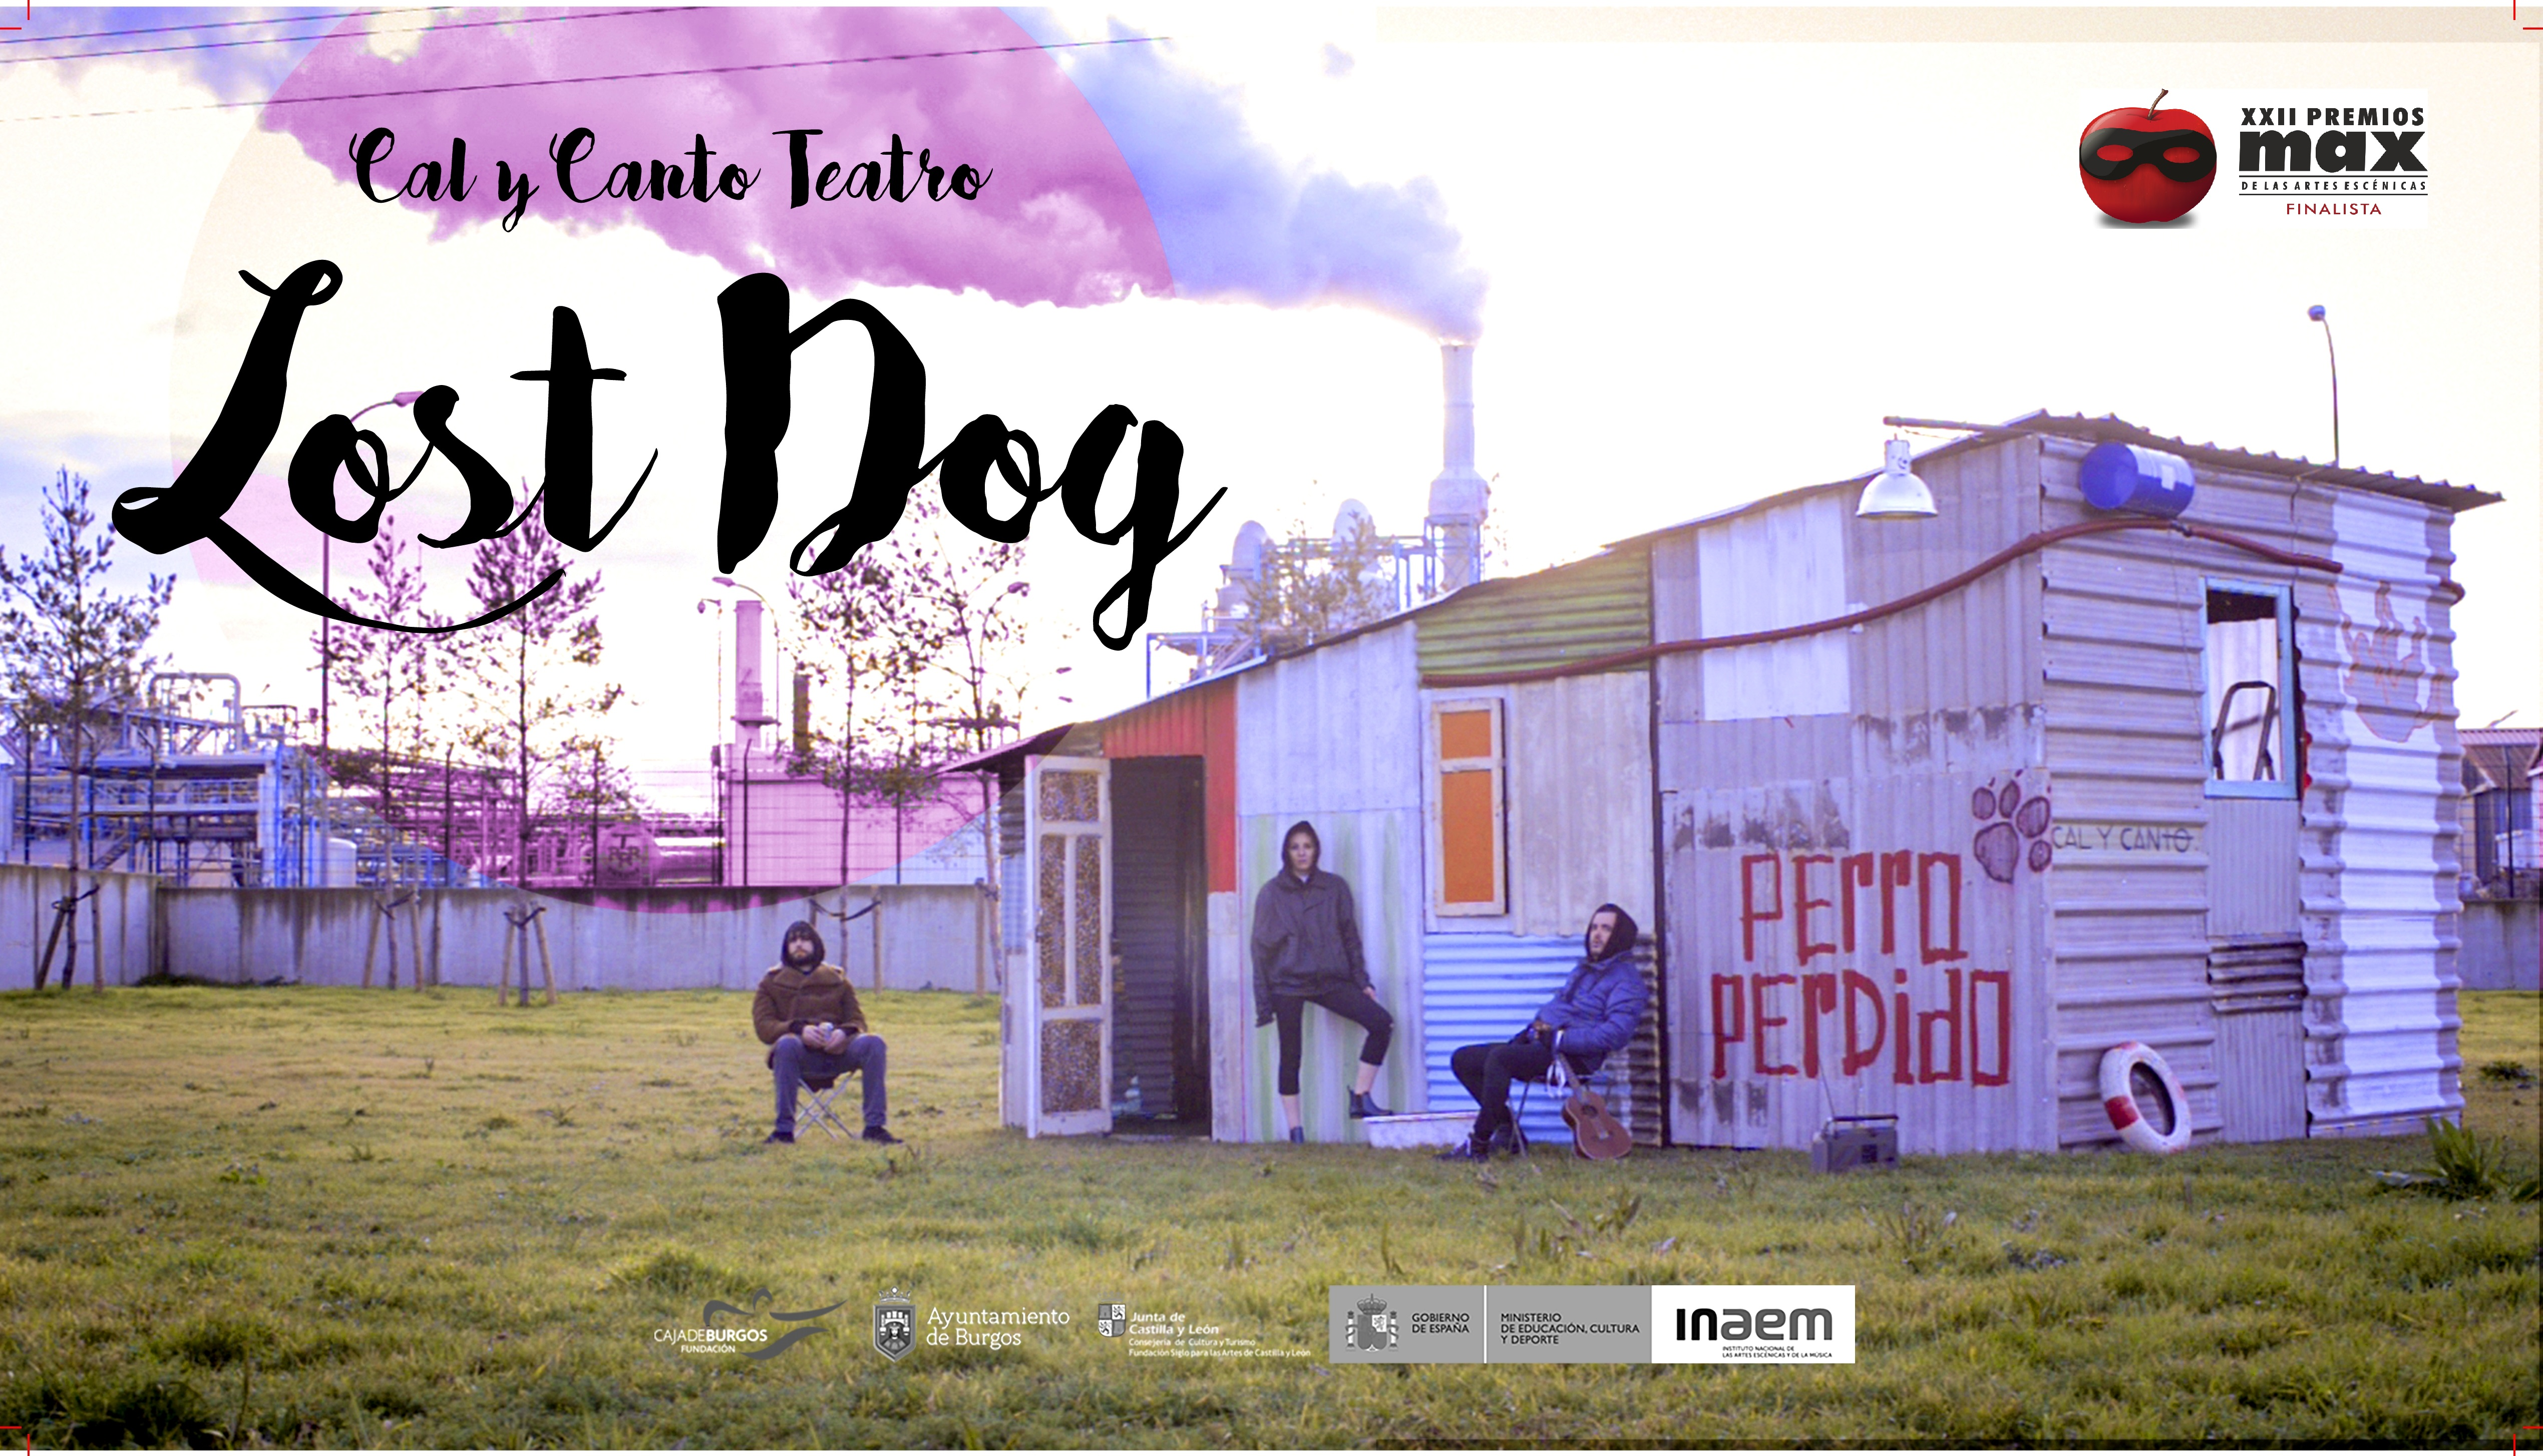 CARTEL LOST DOG, MENCIÓN FINALISTA MAX